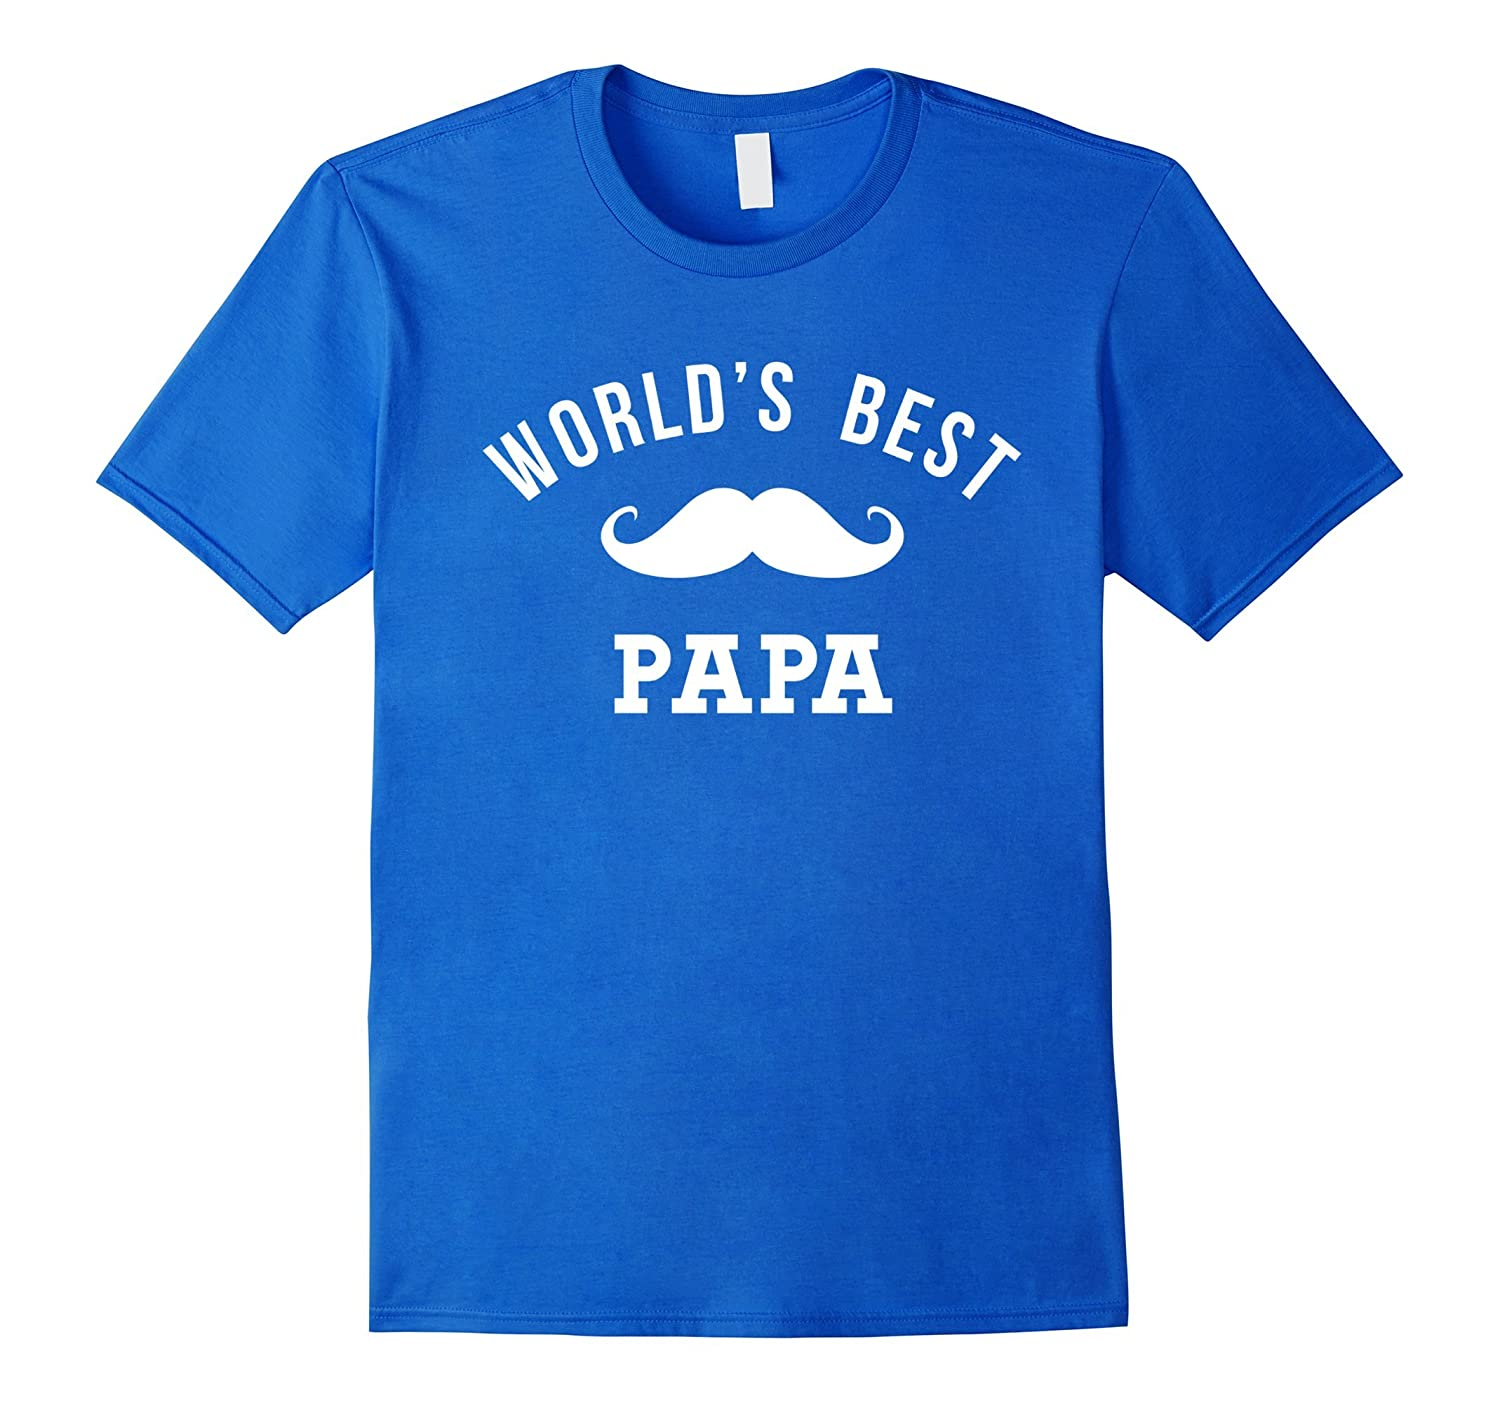 World's Best Papa Shirt Funny Cute Fathers Day Gift Outfit-TH